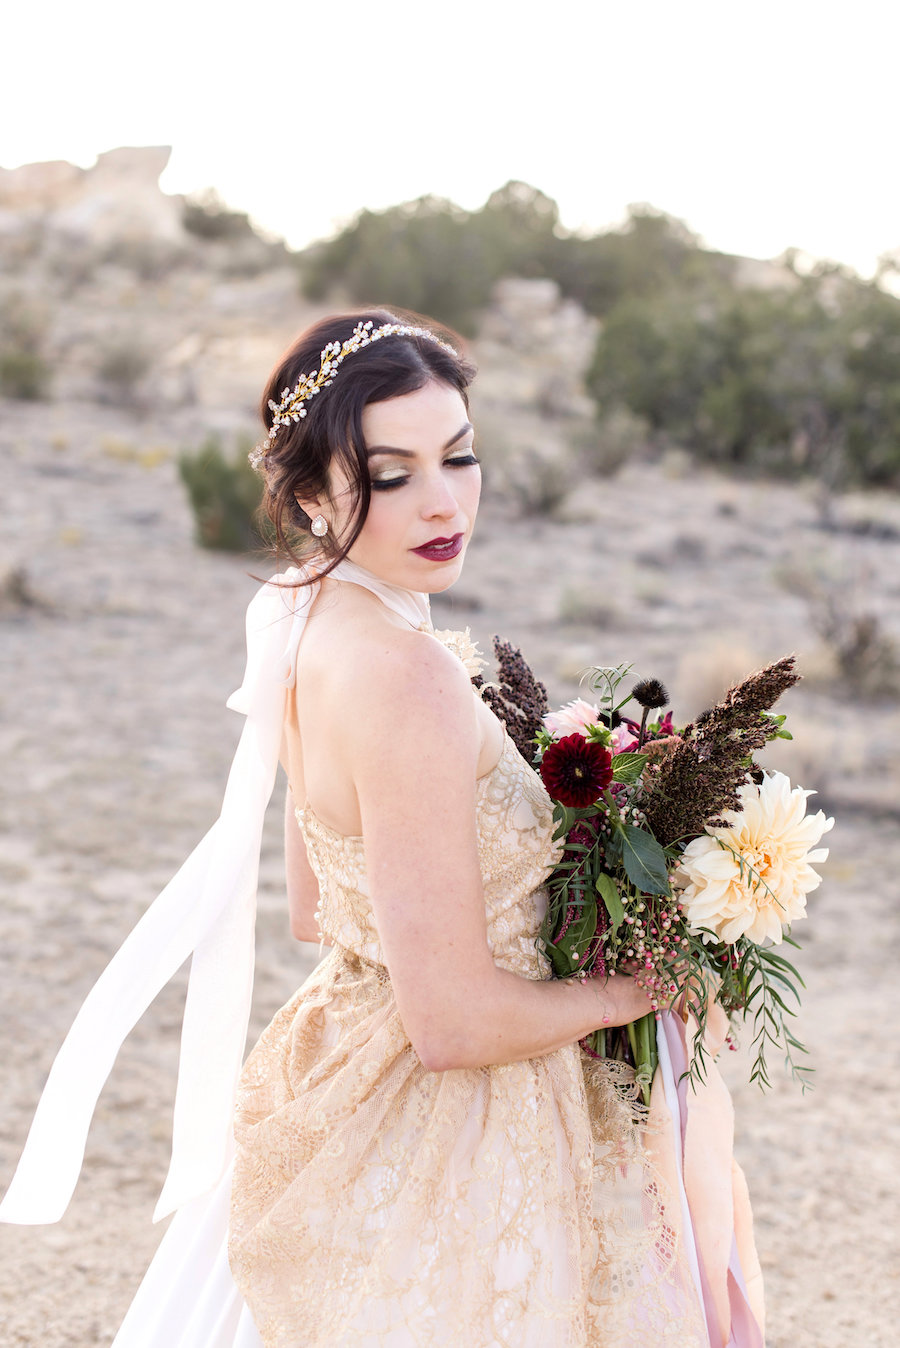 wedding planning photography styled shoot natural light outdoor elopement engagement New Mexico Albuquerque mountains Perfect Wedding Guide headpiece makeup hair updo smoky eye gold neutral bouquet lace high neck greenery bold lip gold details dress